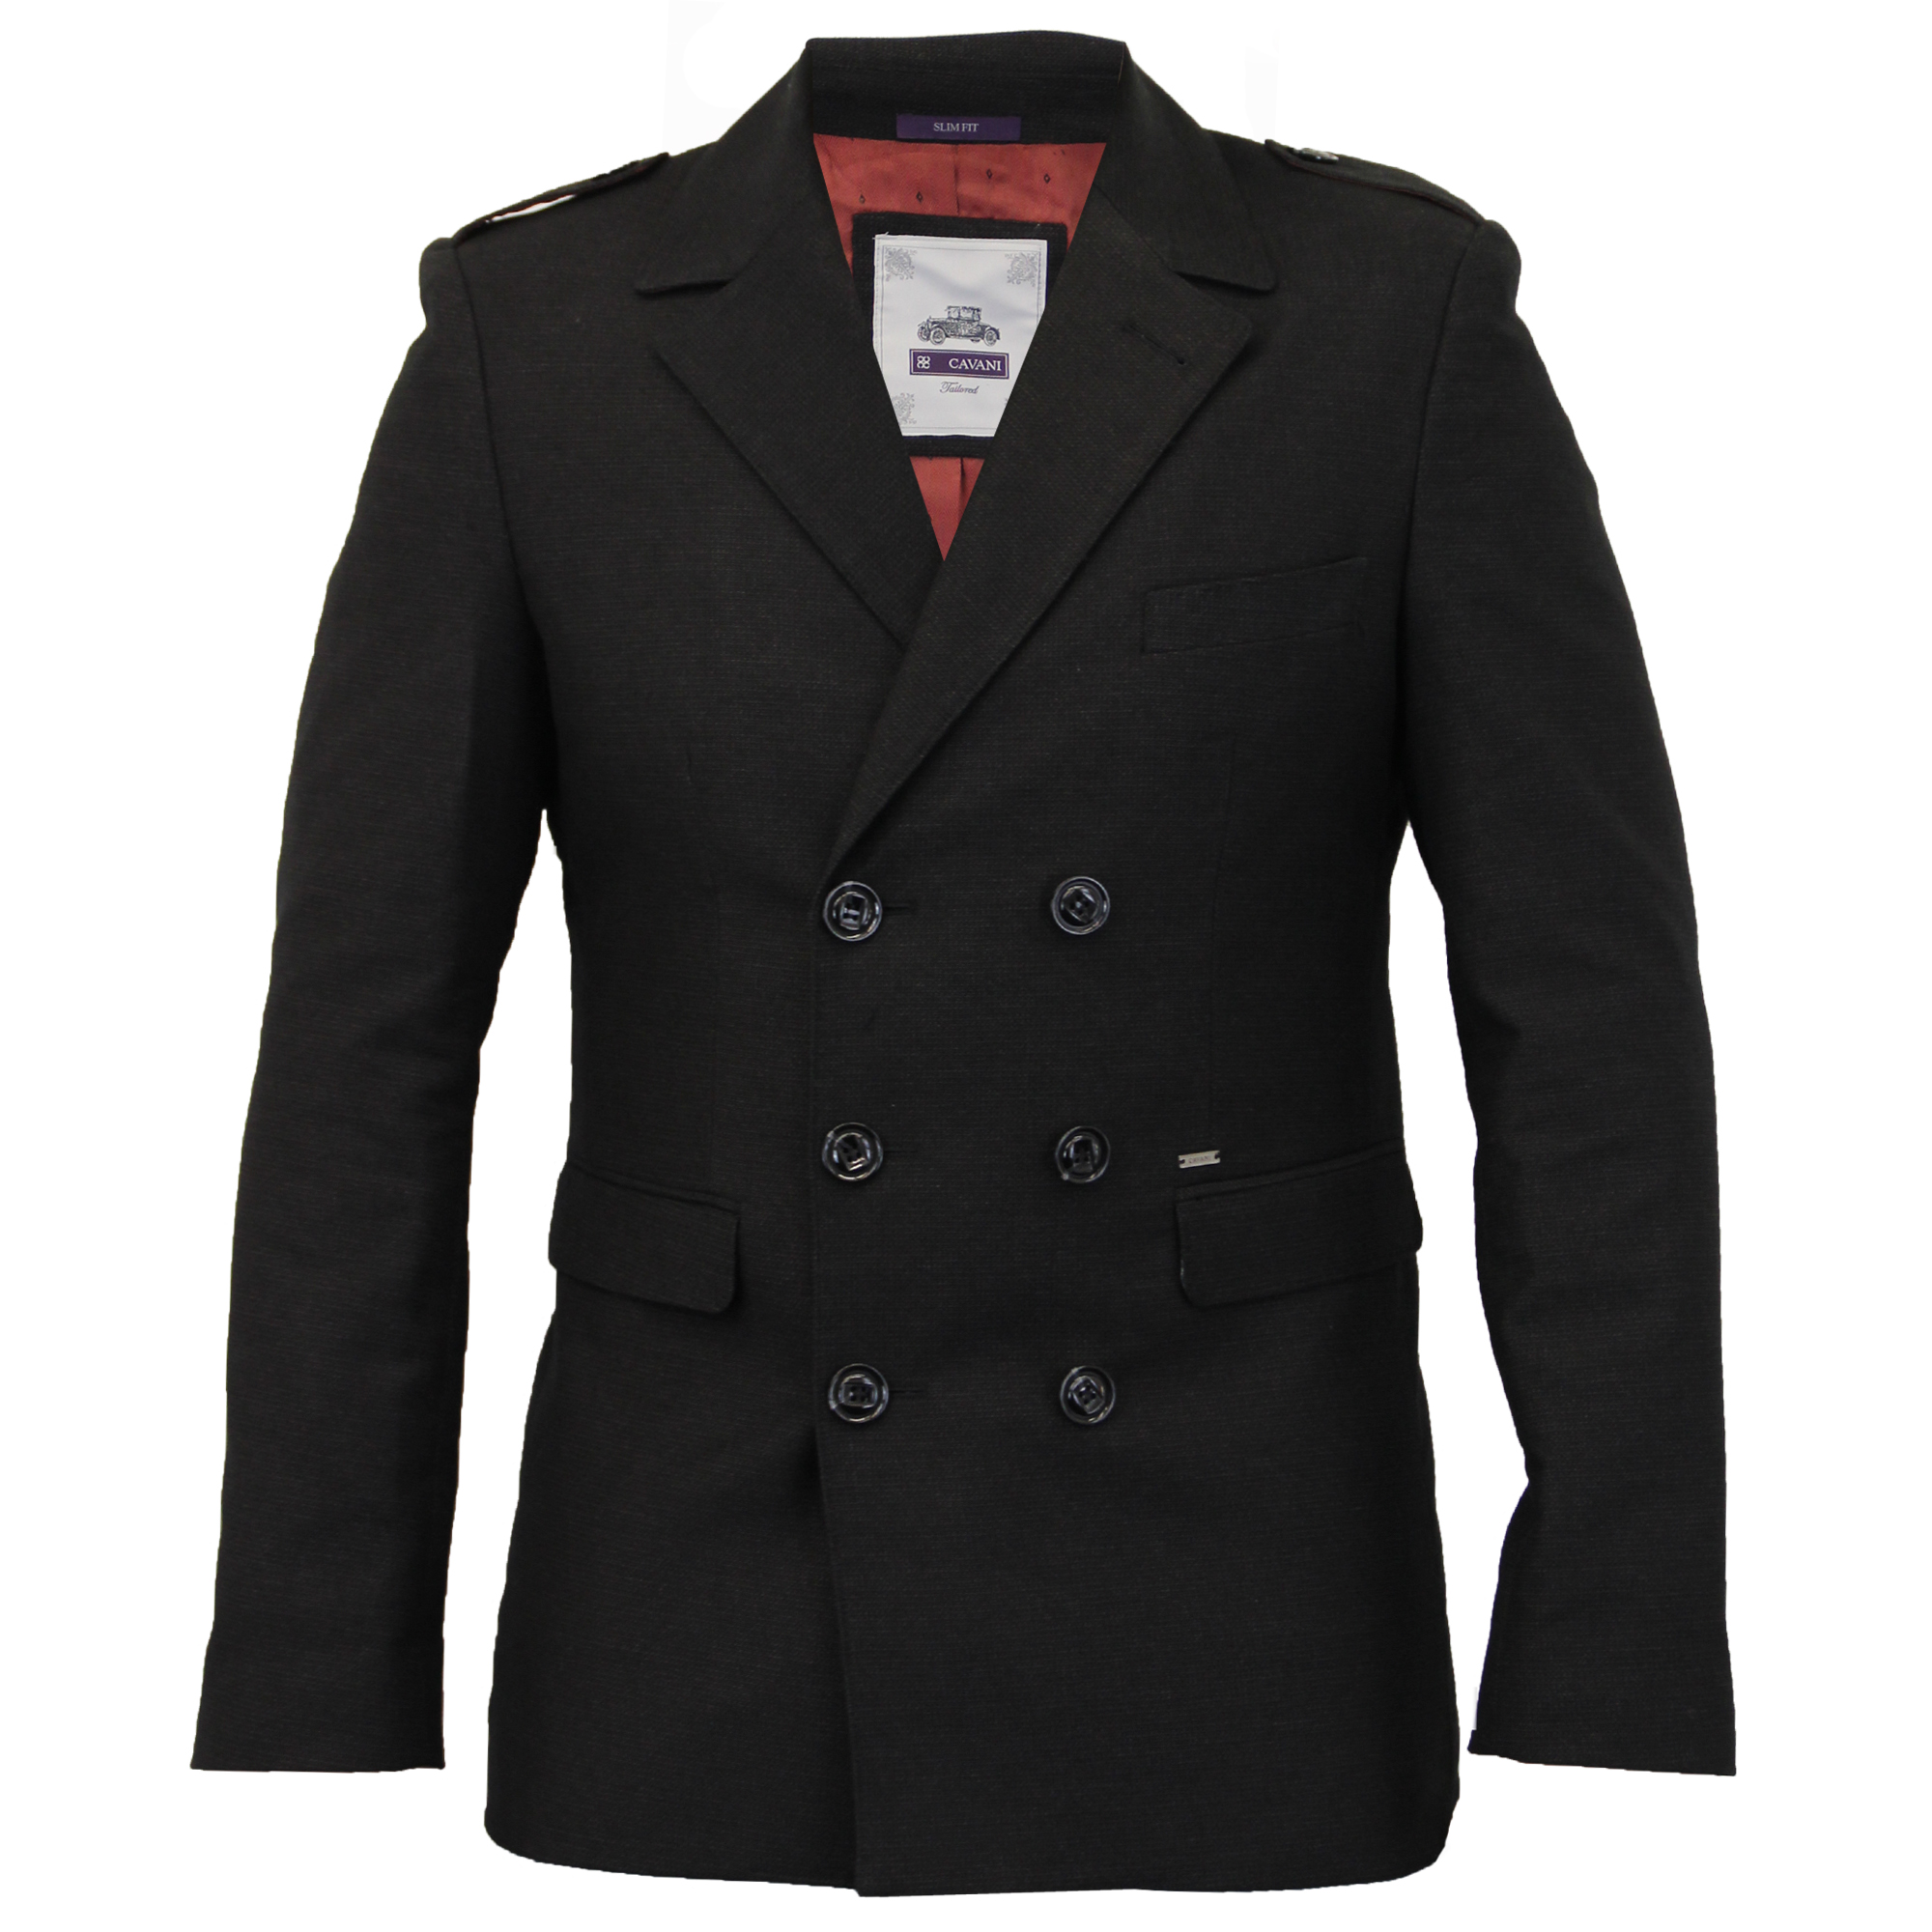 Find great deals on eBay for military double breasted coat. Shop with confidence.